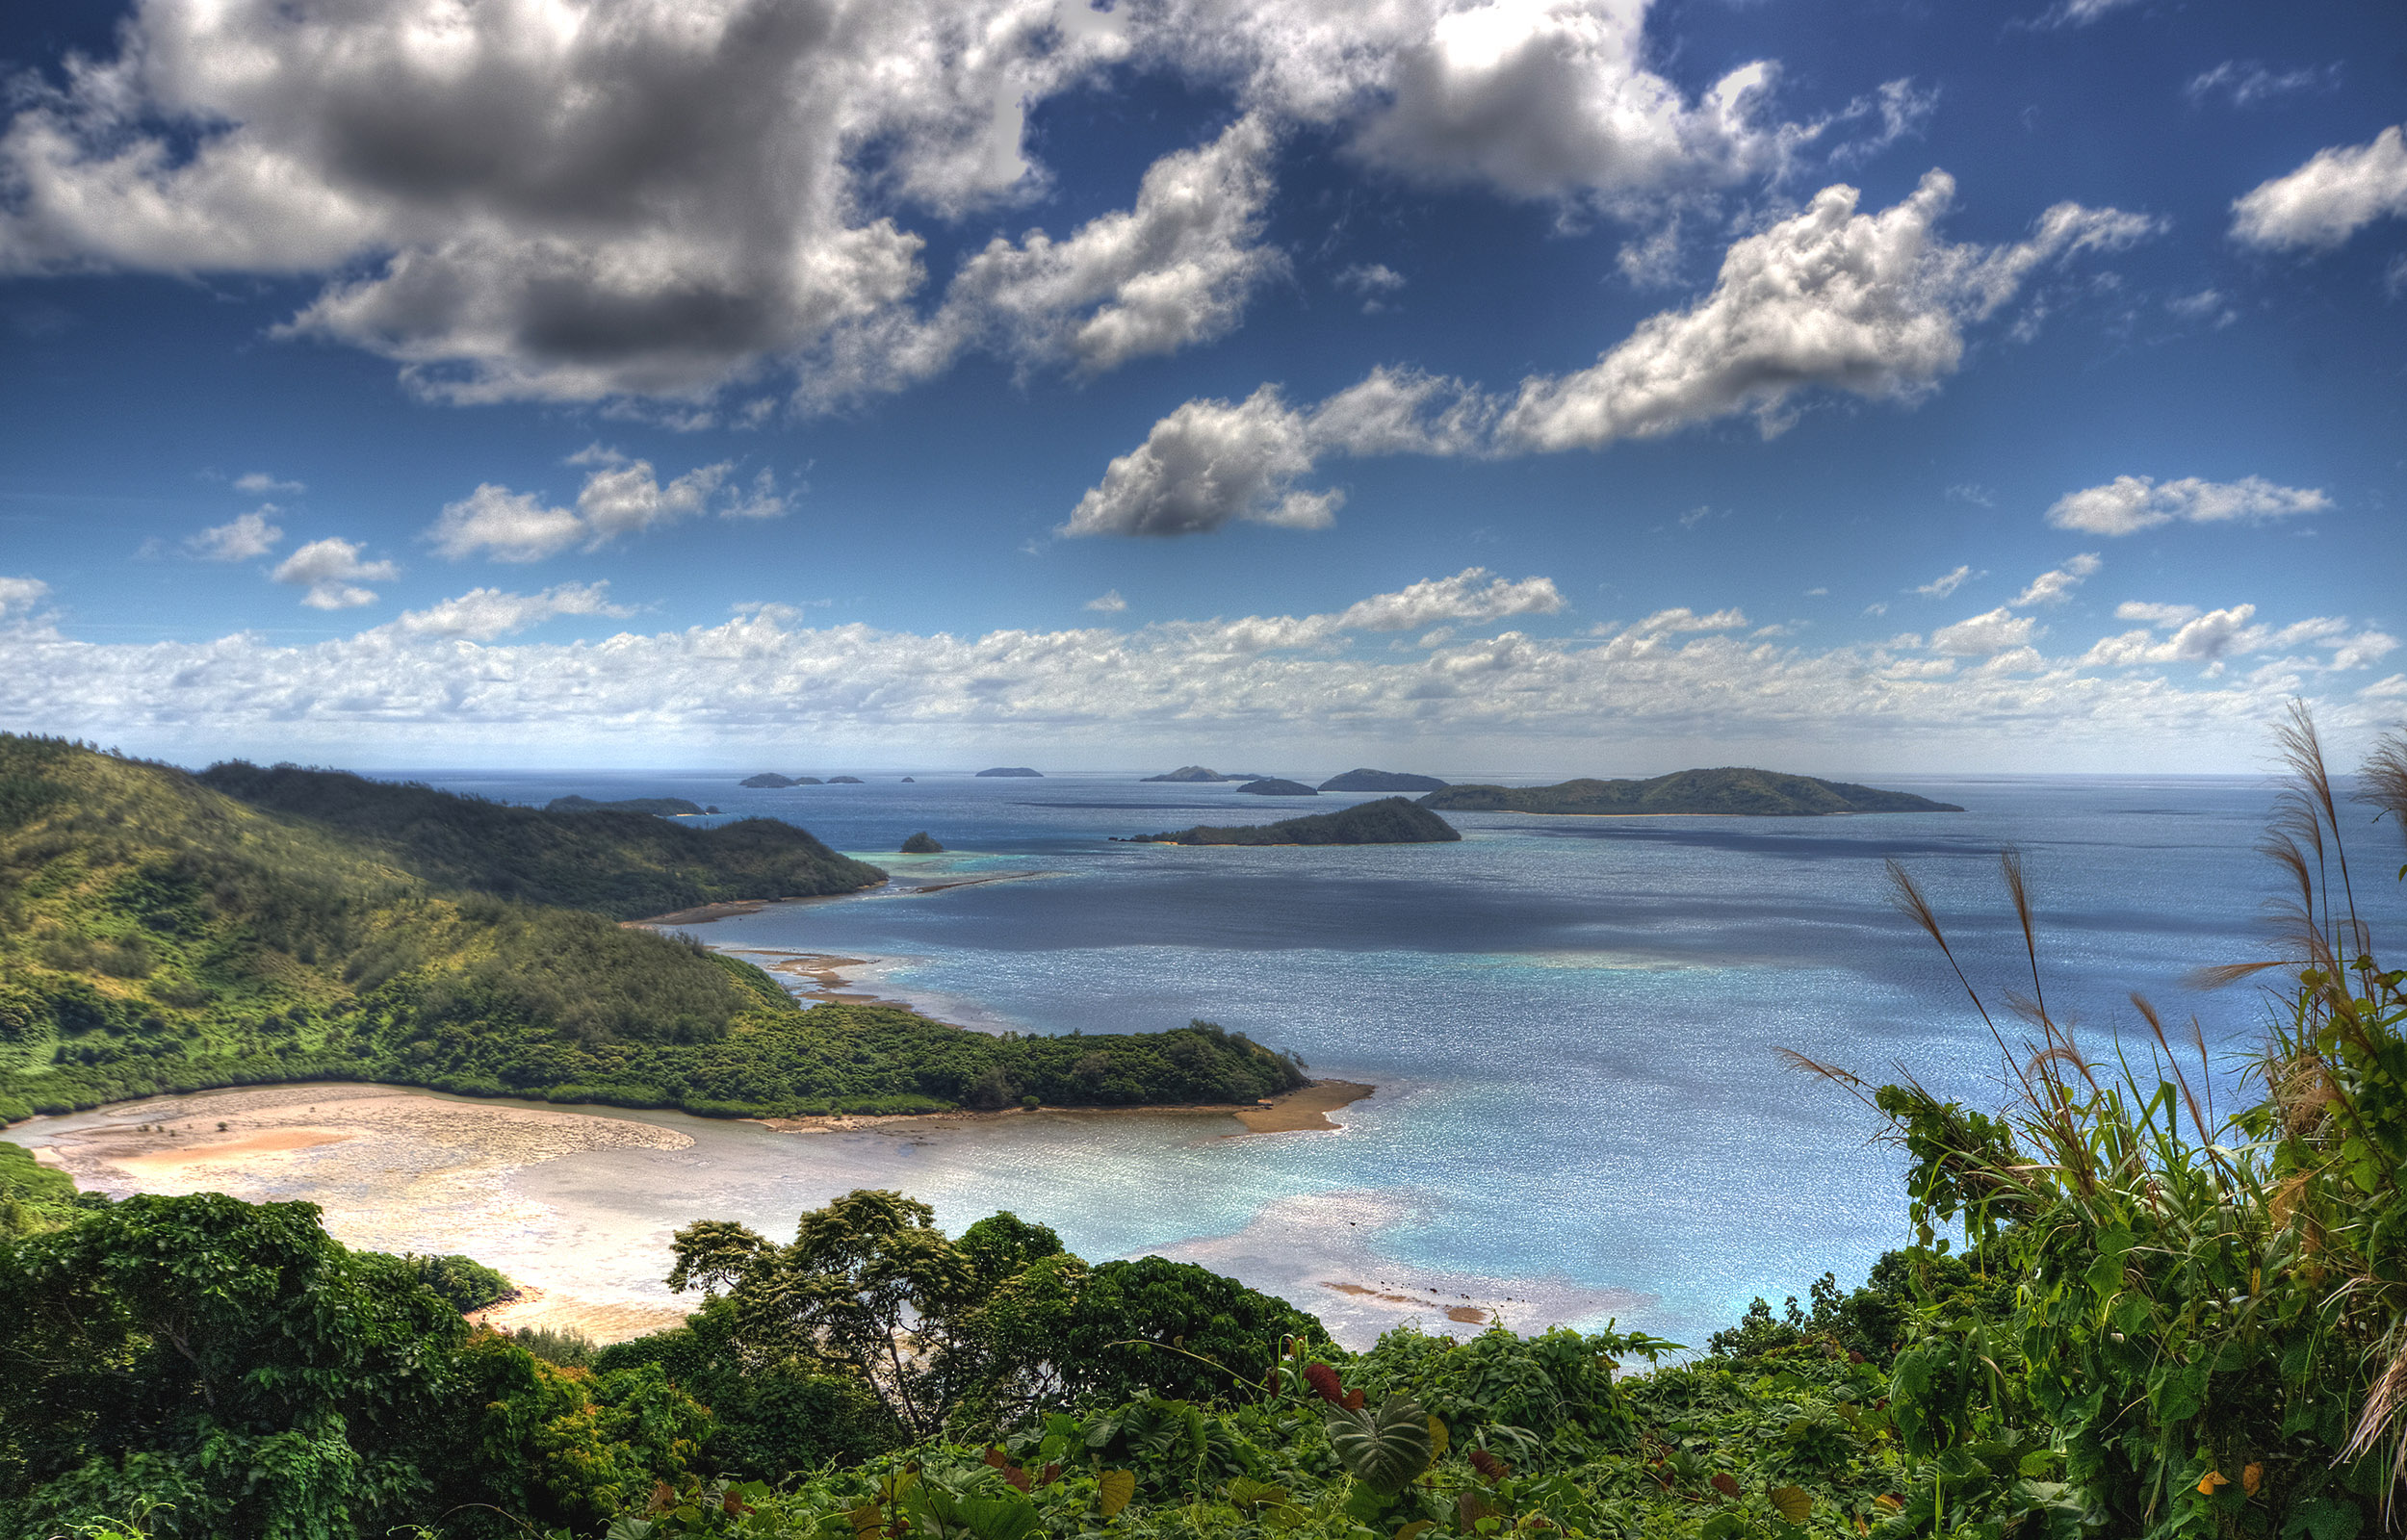 Looking down onto a couple of bays and outlying islands with an overcast sky in Fiji